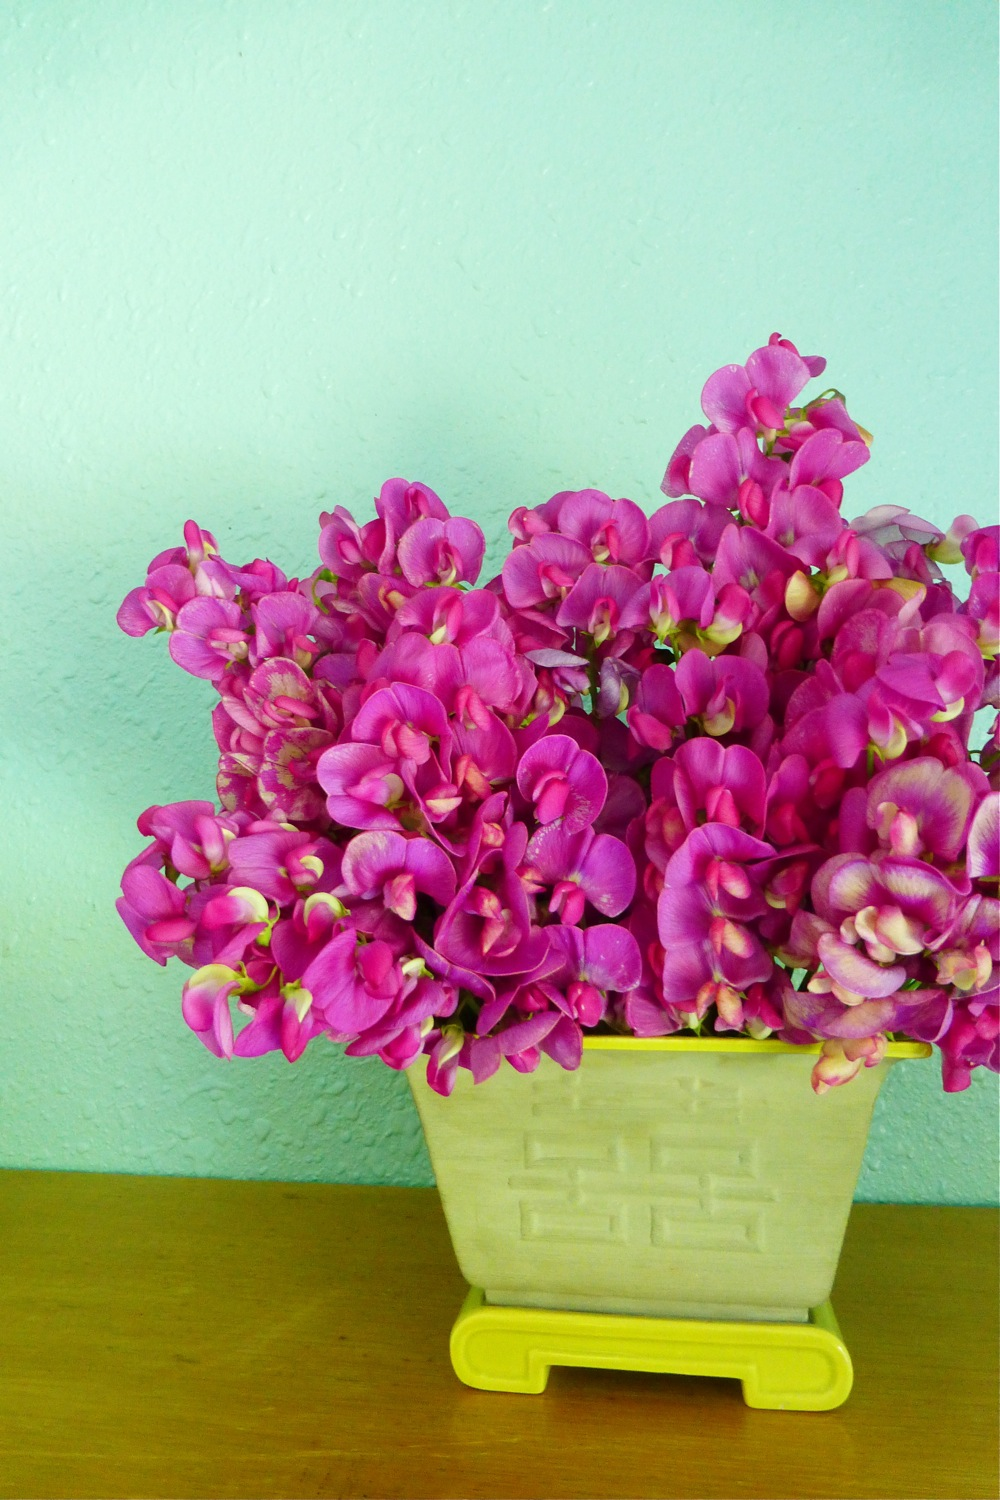 wild sweet peas, wild sweet peas in Asian style container, wild sweet pea flower arrangement, Asian style flower arrangement, Asian style flower arranging